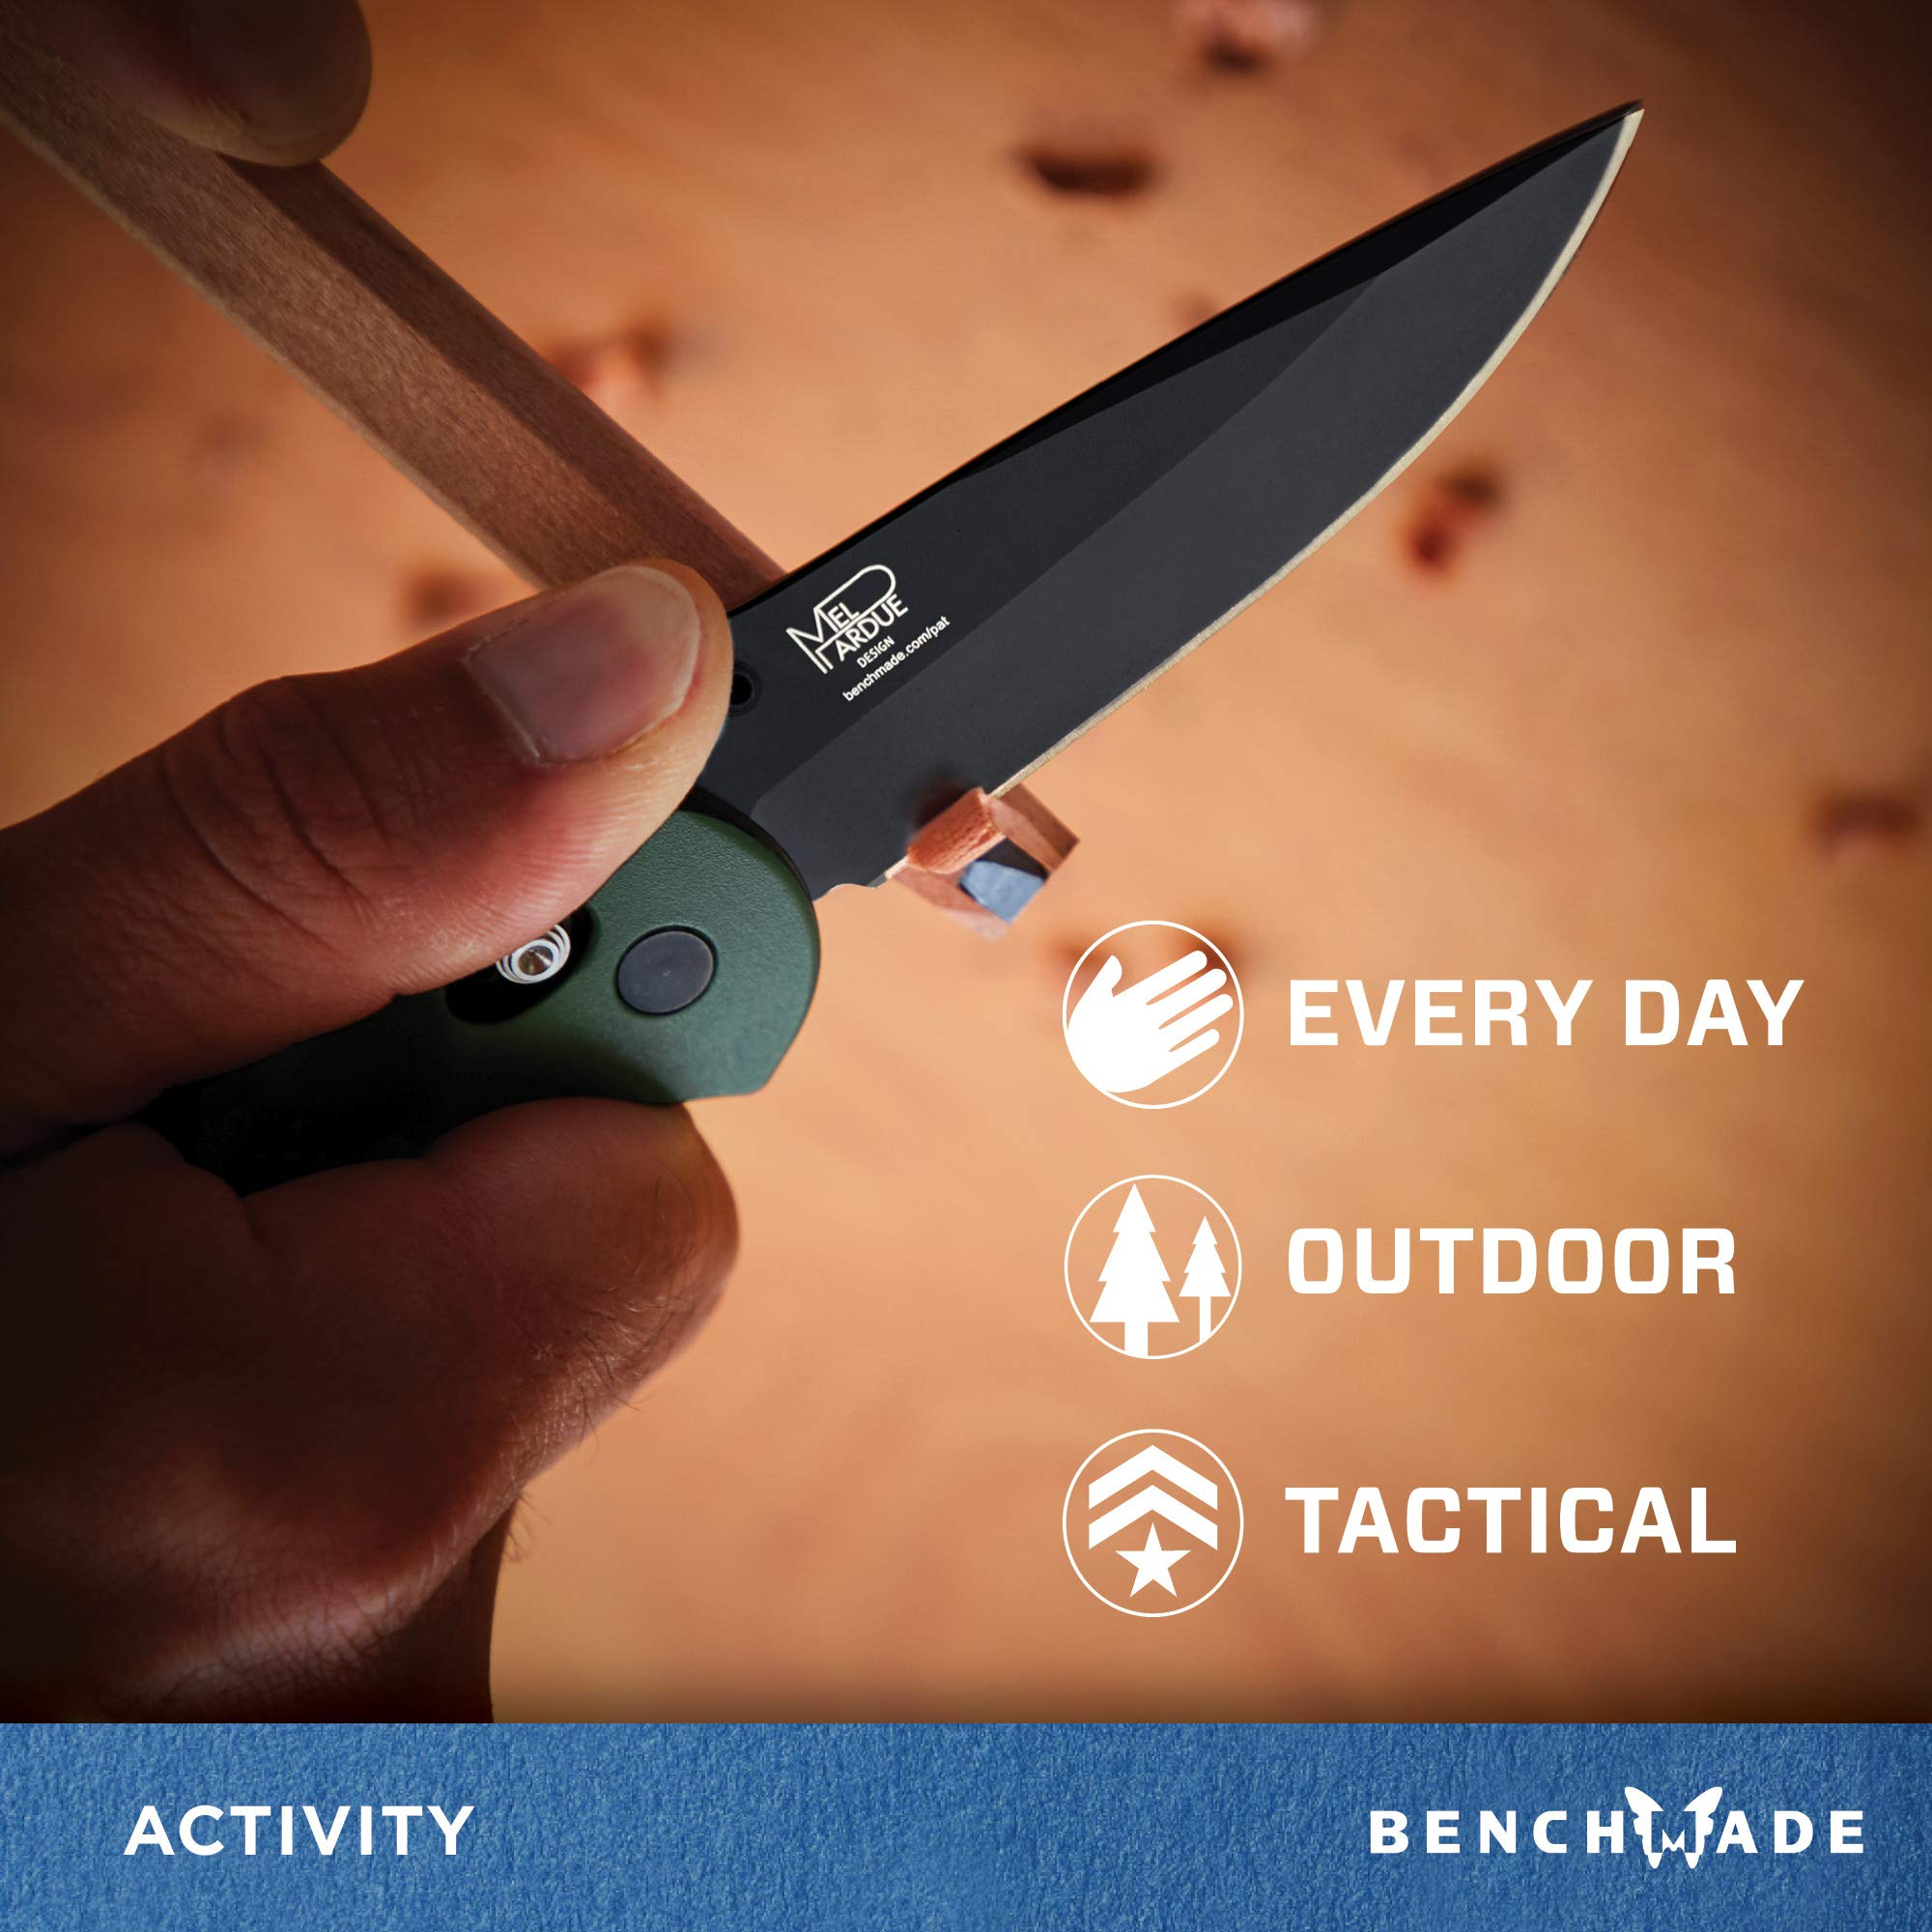 Benchmade - Griptilian 551 Knife with CPM-S30V Steel, Drop-Point Blade, Plain Edge, Coated Finish, Olive Handle by Benchmade (Image #3)